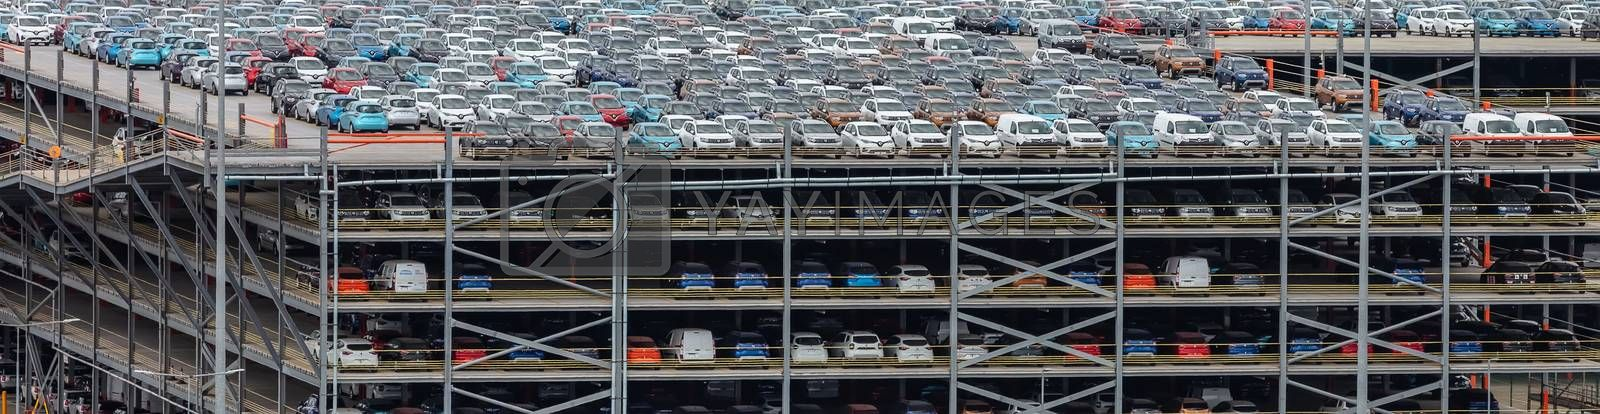 Southampton port, England, UK - June 08, 2020: Multilevel parking lot, storage facility in the port of Southampton. Full of various imported cars. Aerial view.